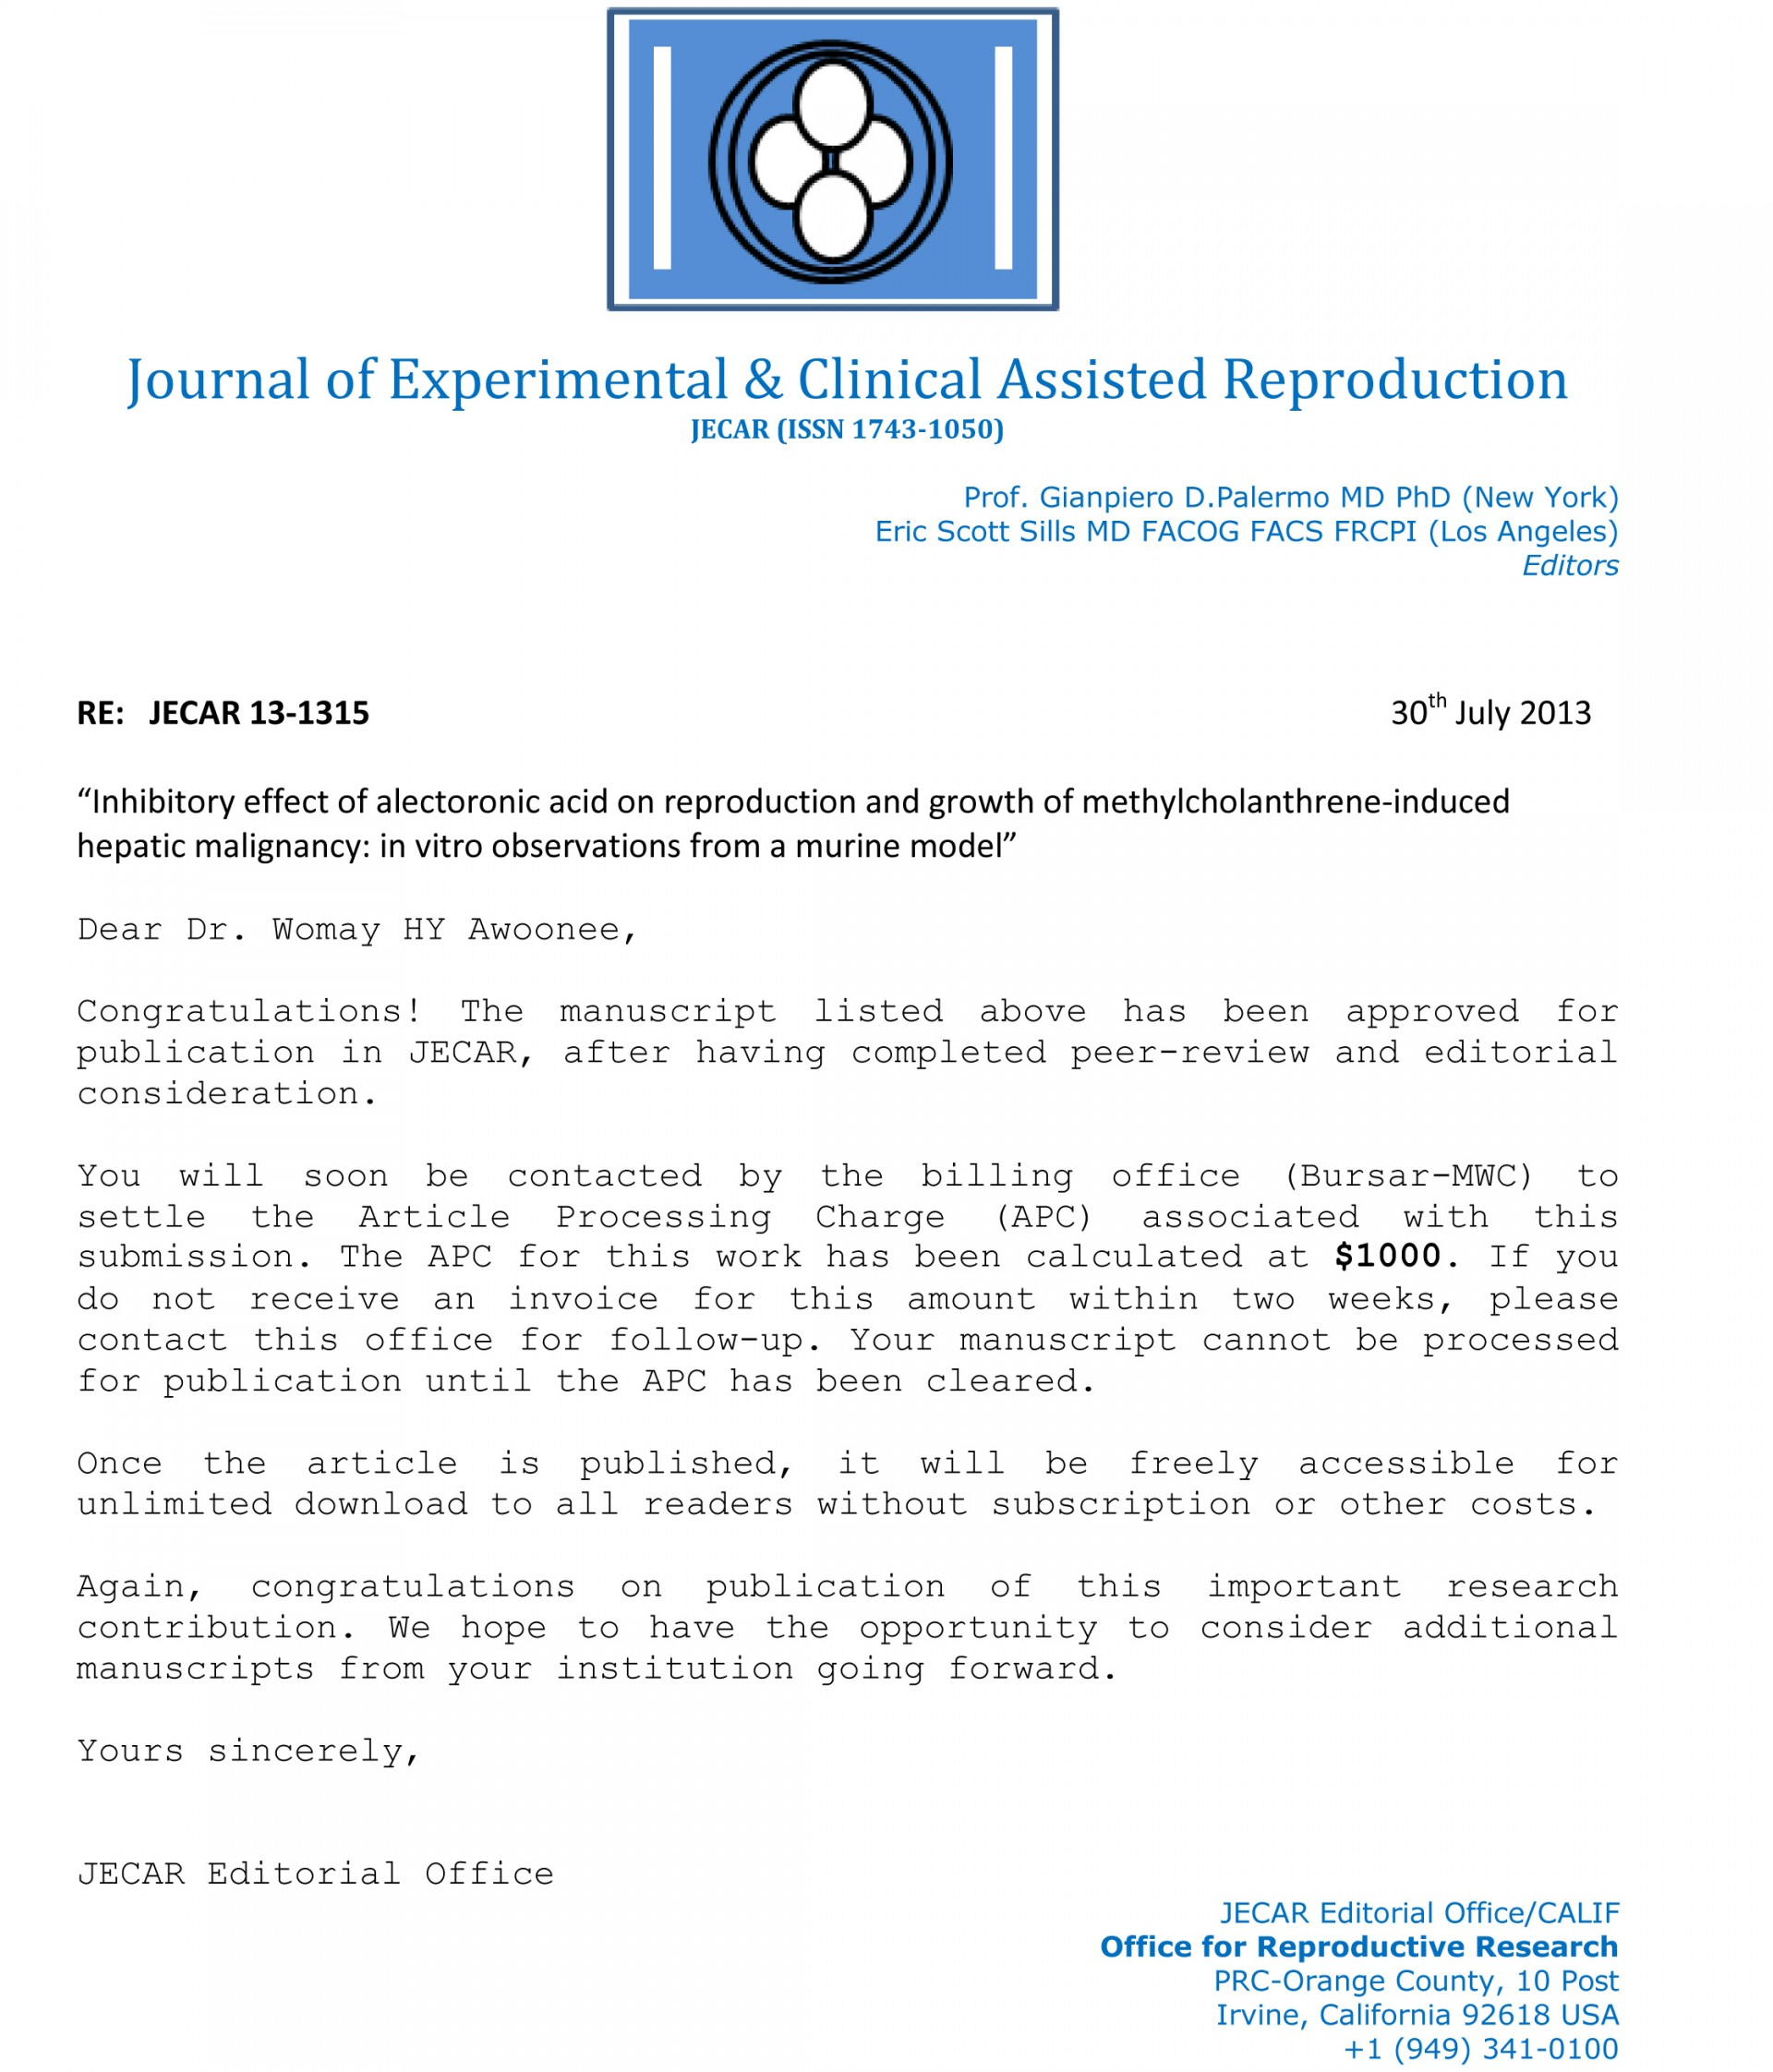 007 Research Paper Jecar Acceptance Enl How To Publish Without Striking A Professor 1920